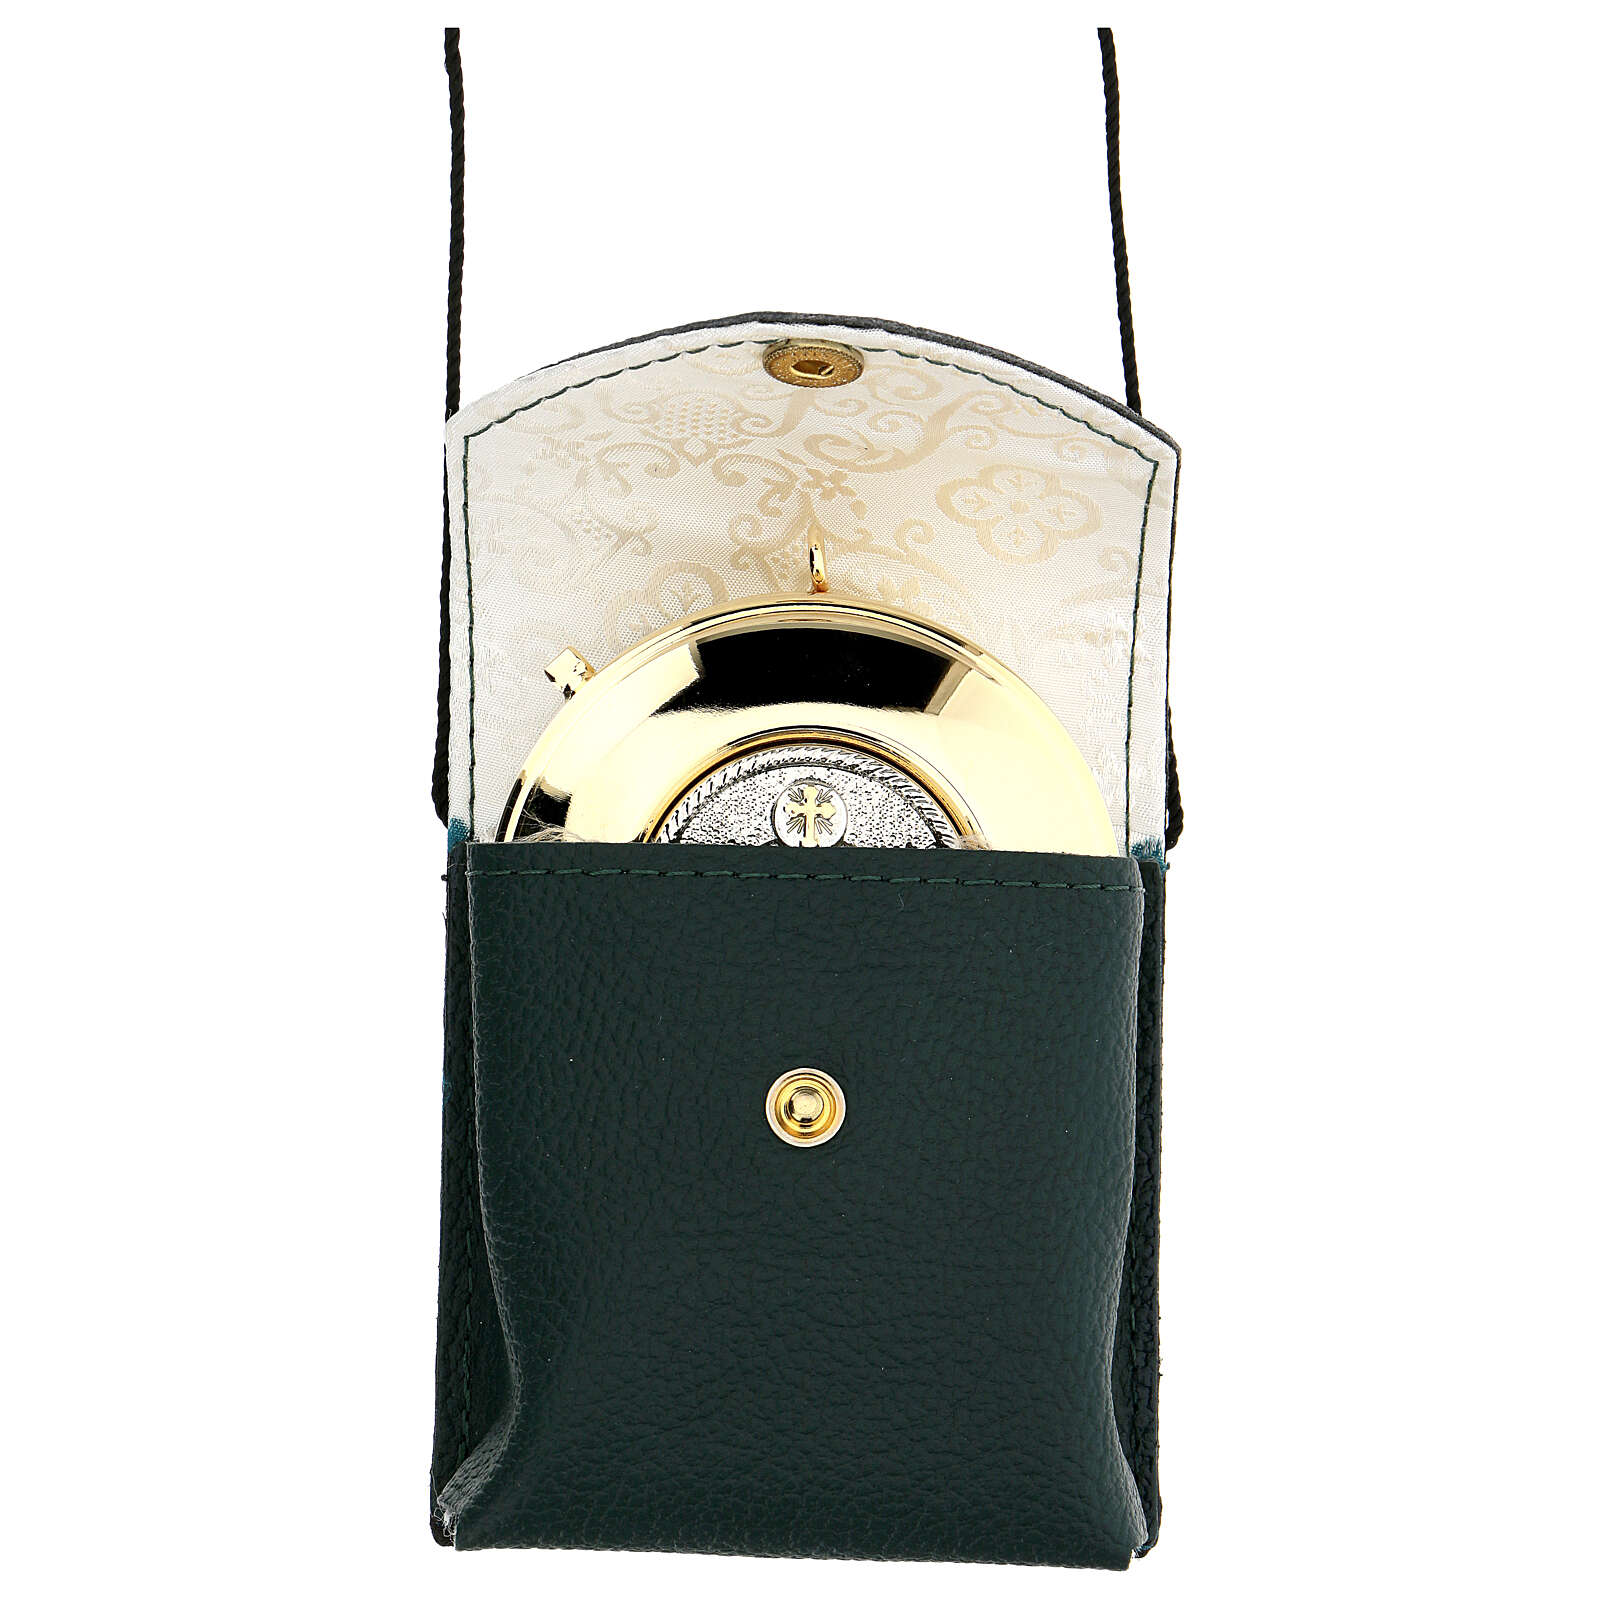 Green leather burse with string and 3 in pyx 3